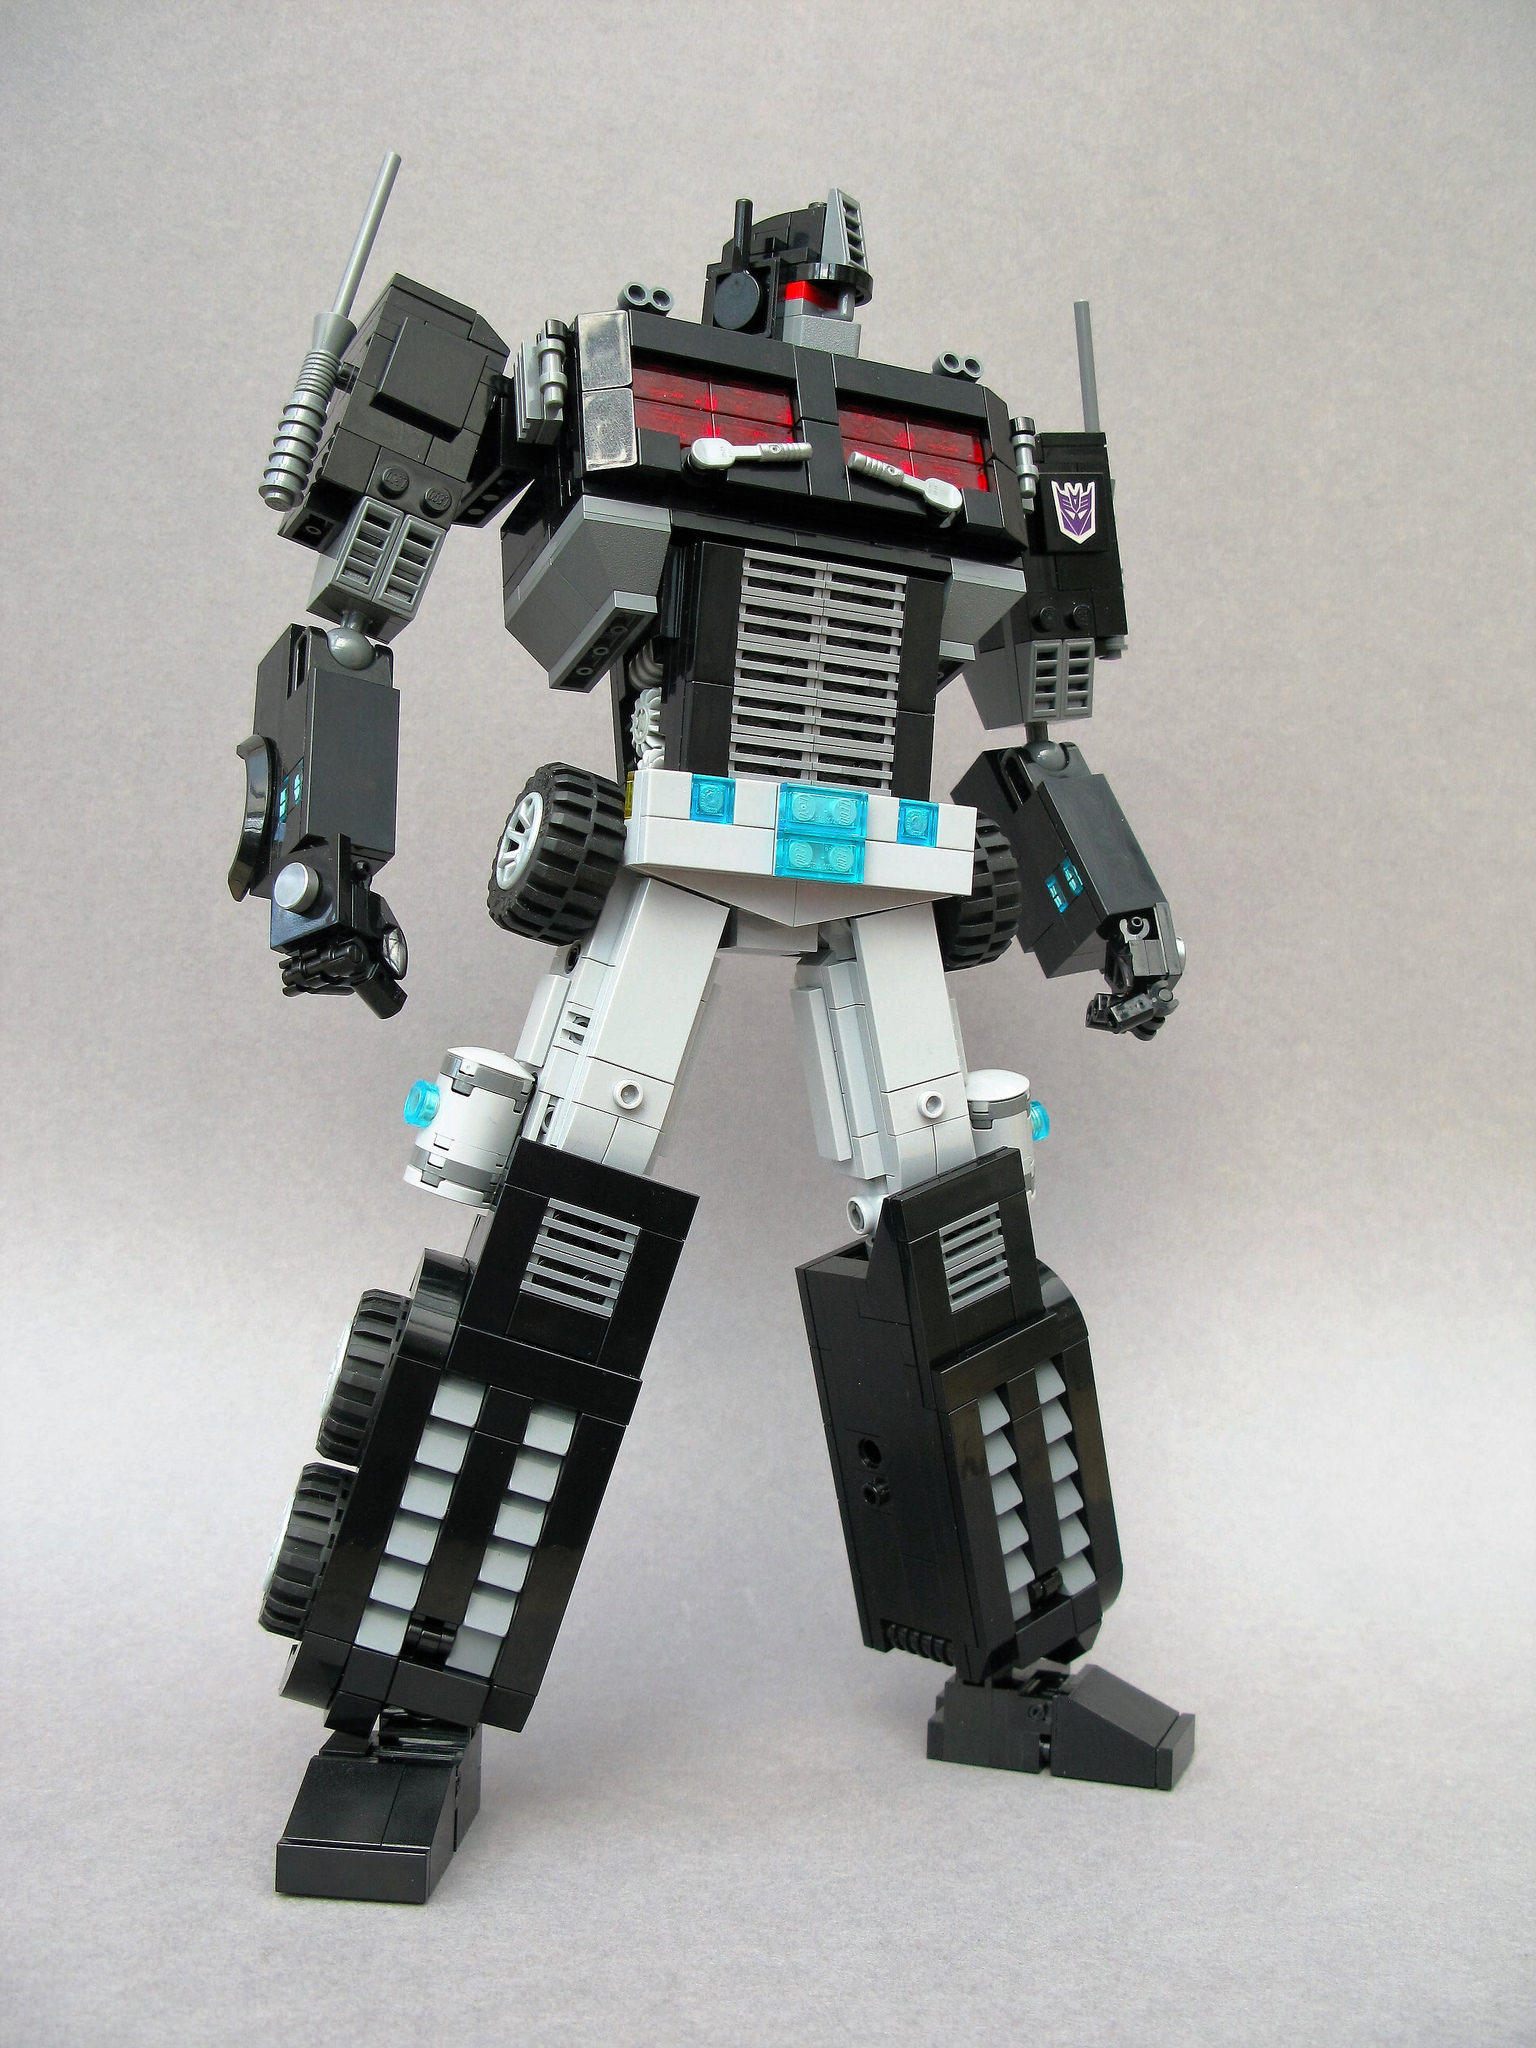 nemesis prime bricknerd your place for all things lego and the